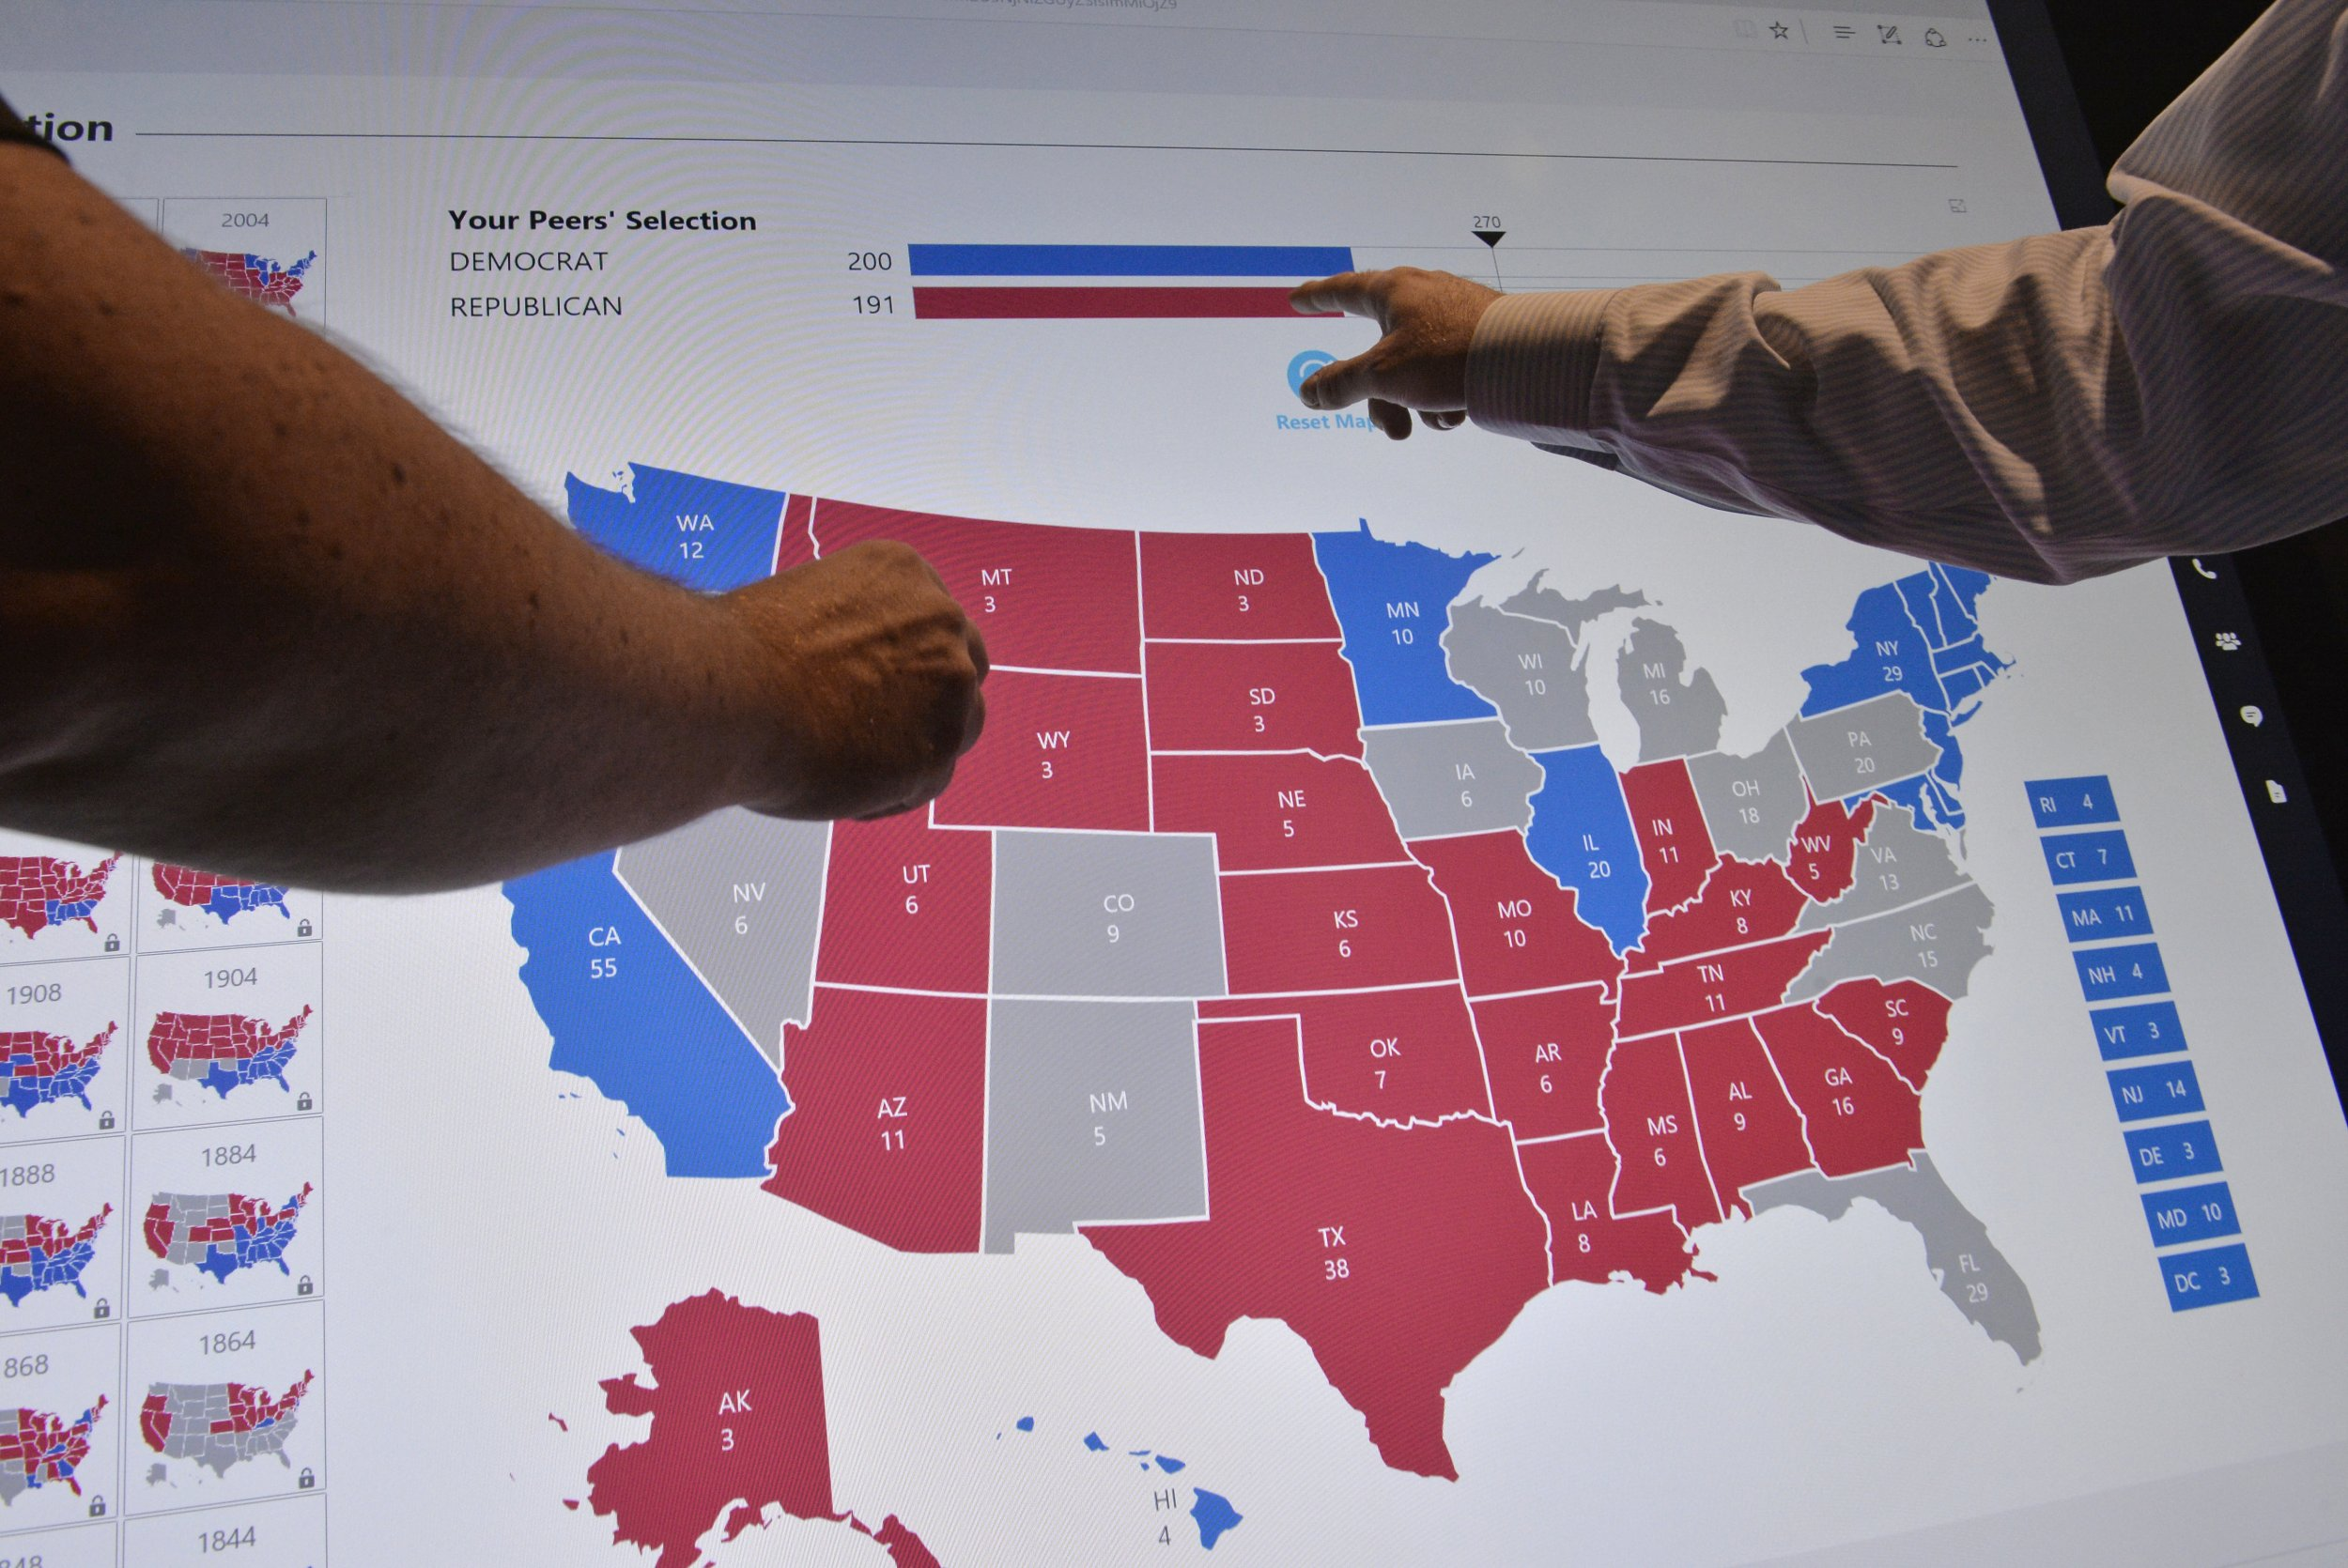 Quora Question Why Are Republicans Red And Democrats Blue - 2016 us map for electoral votes to color in